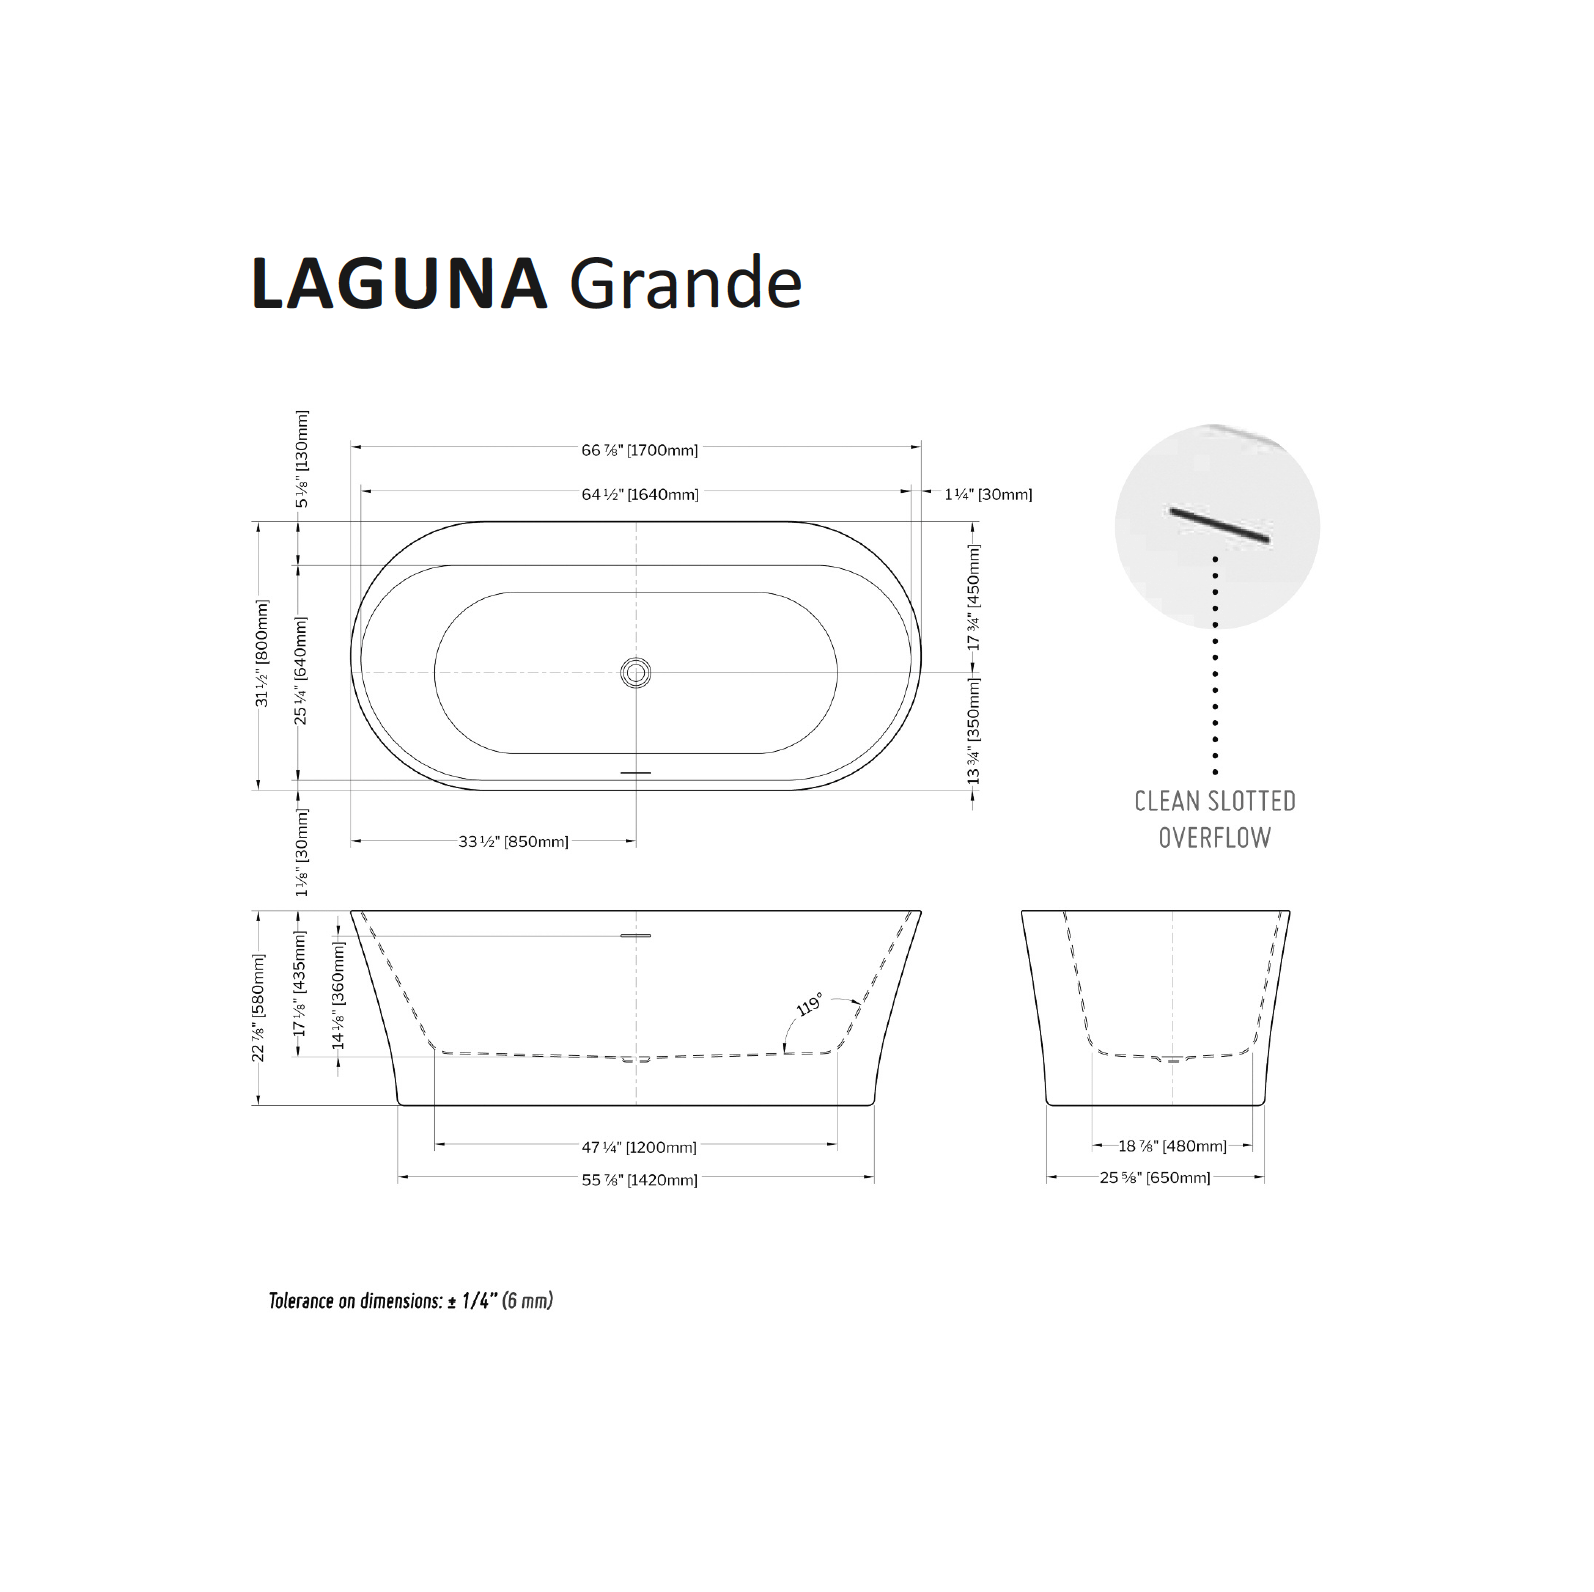 Laguna Grande Specifications